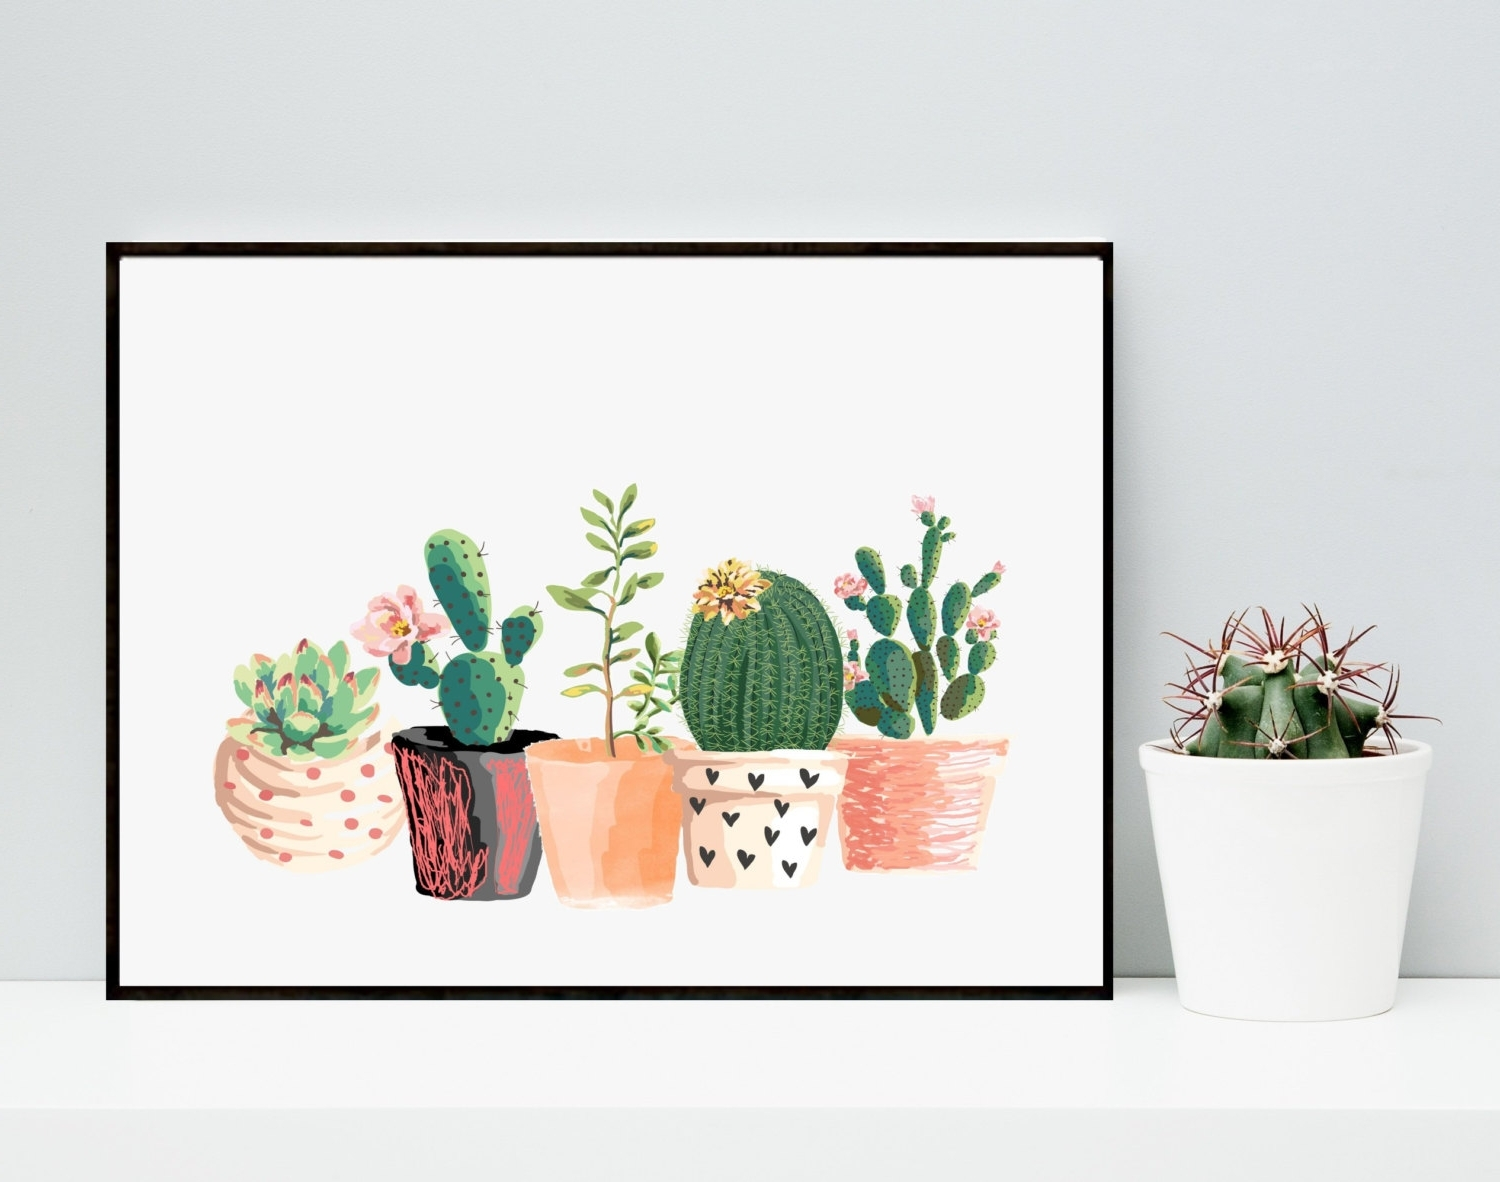 Cactus Wall Art With Regard To Well Known 35 Cactus Wall Art, Cactus Wall Art Wood Metal 80Cm – Swinkimorskie (View 7 of 15)